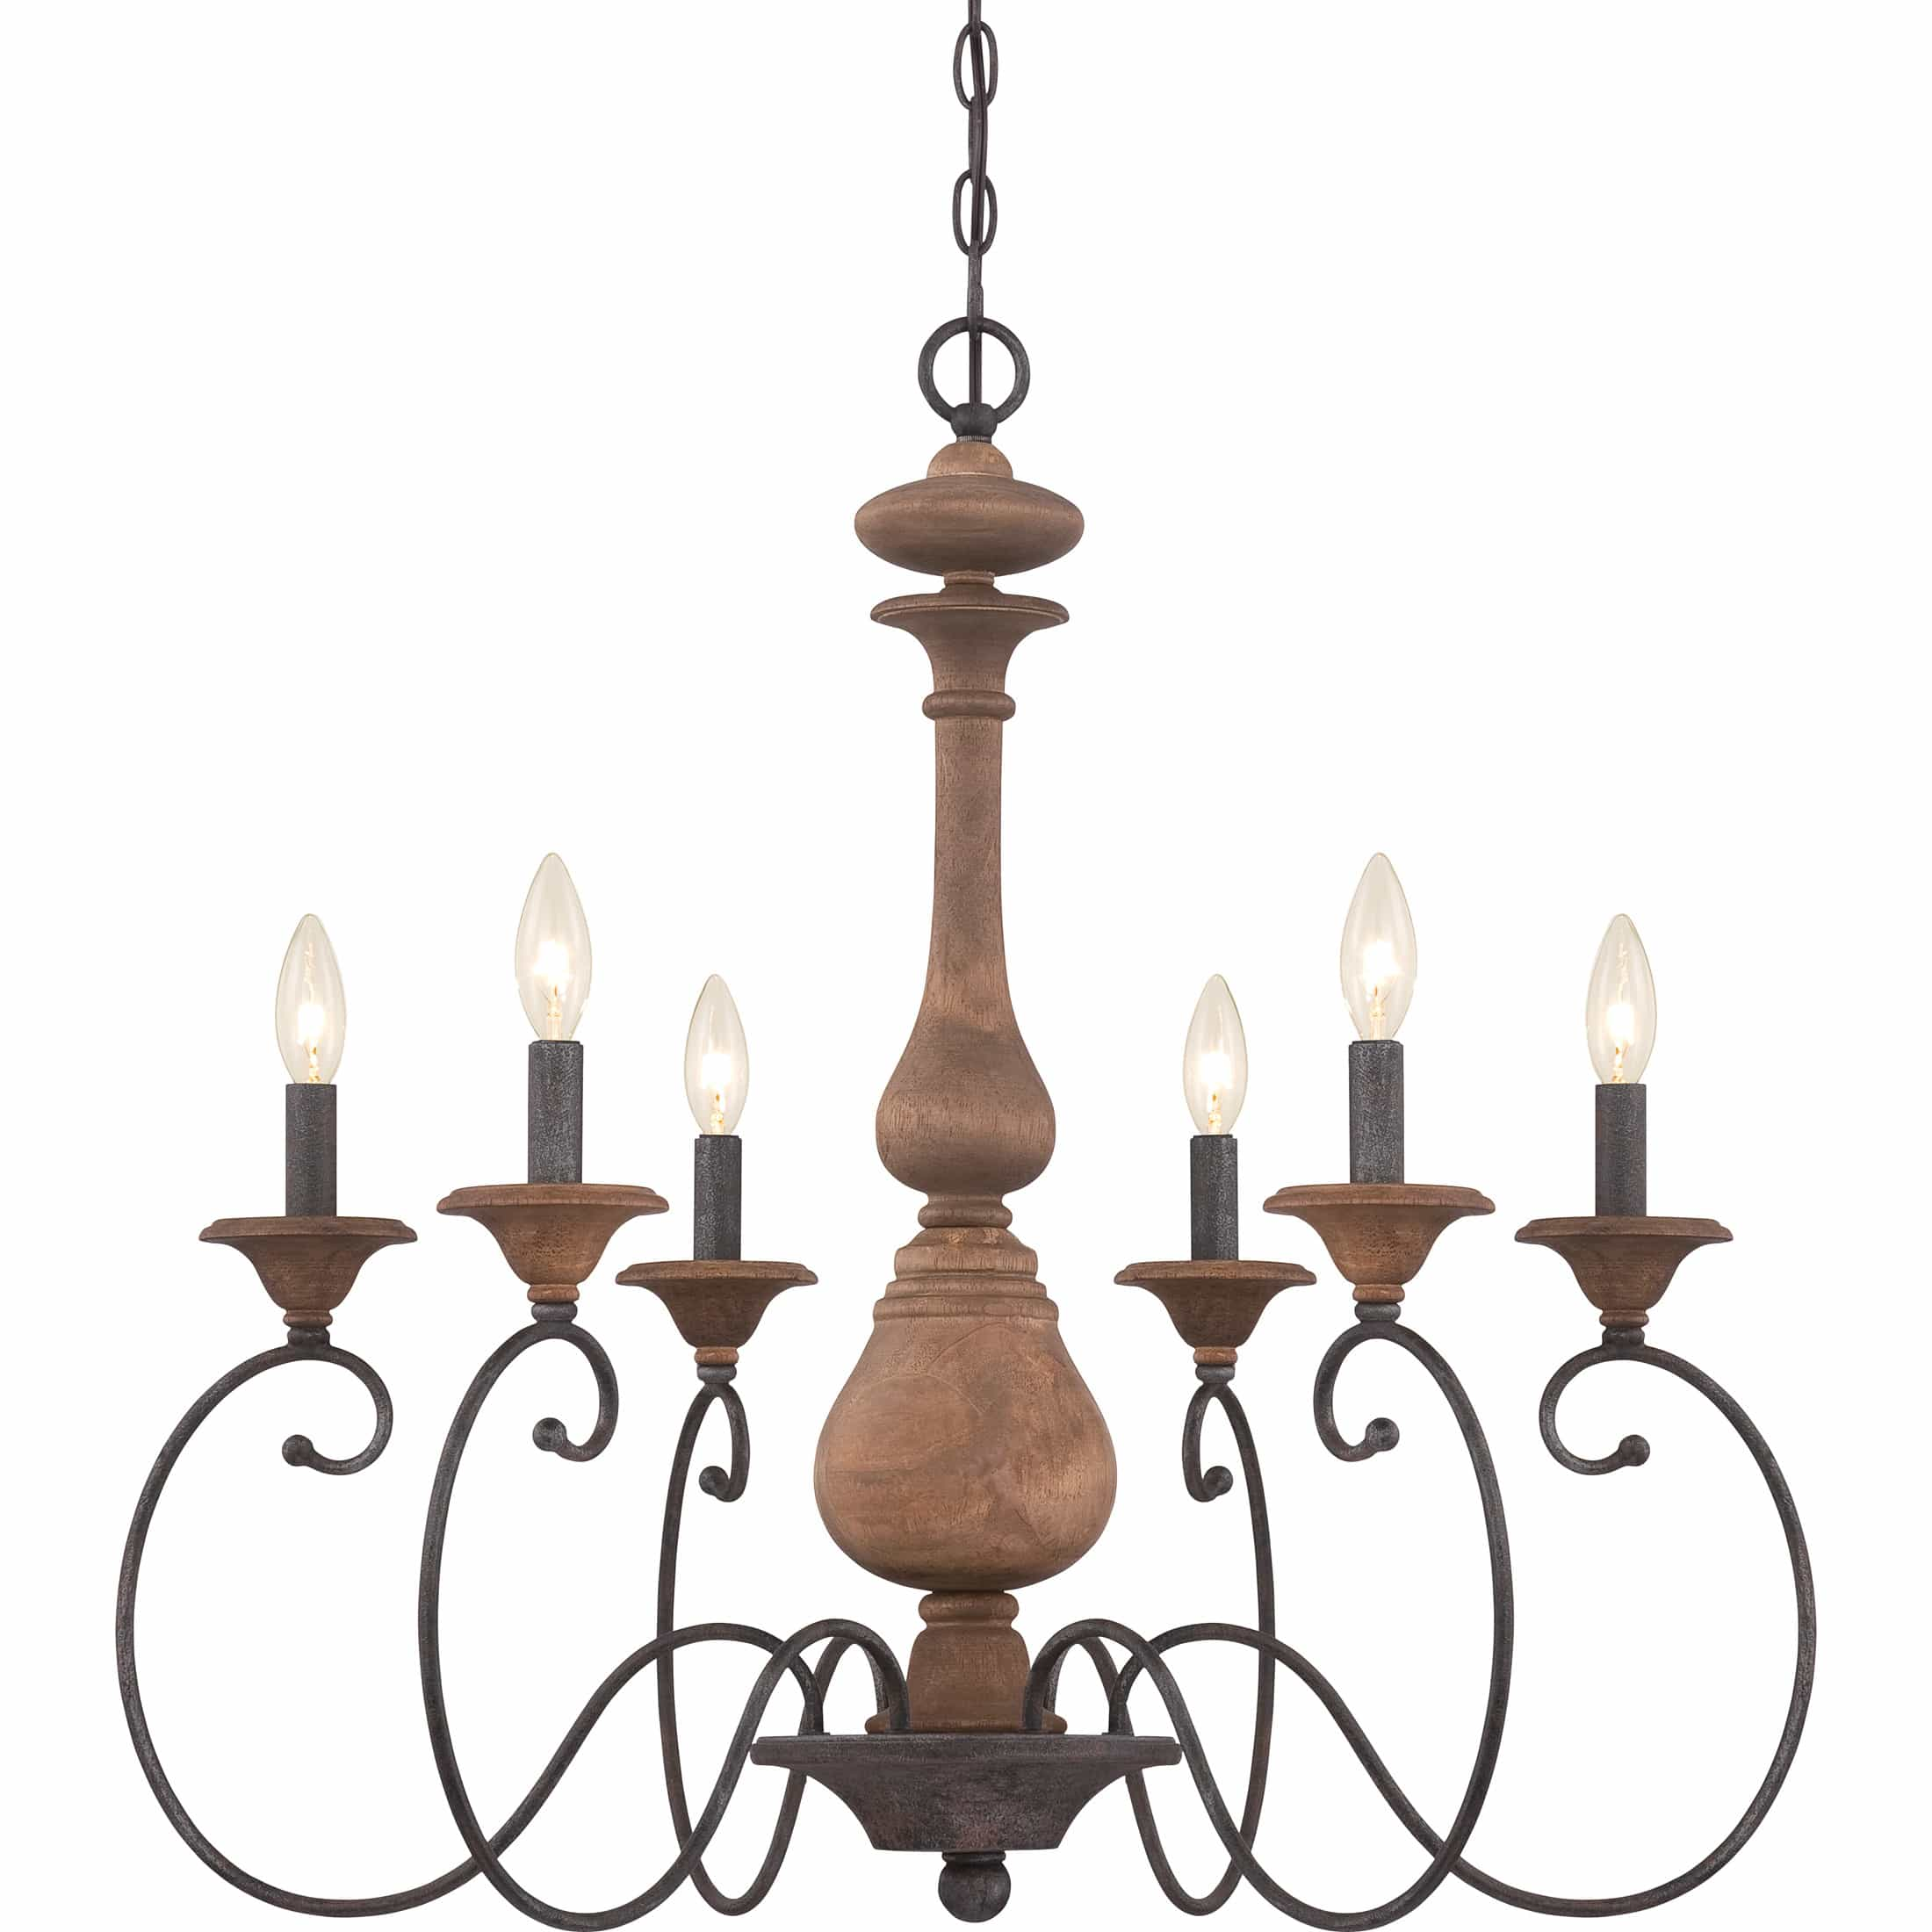 Fixer Upper Lights Get the fixer upper look with this wood and